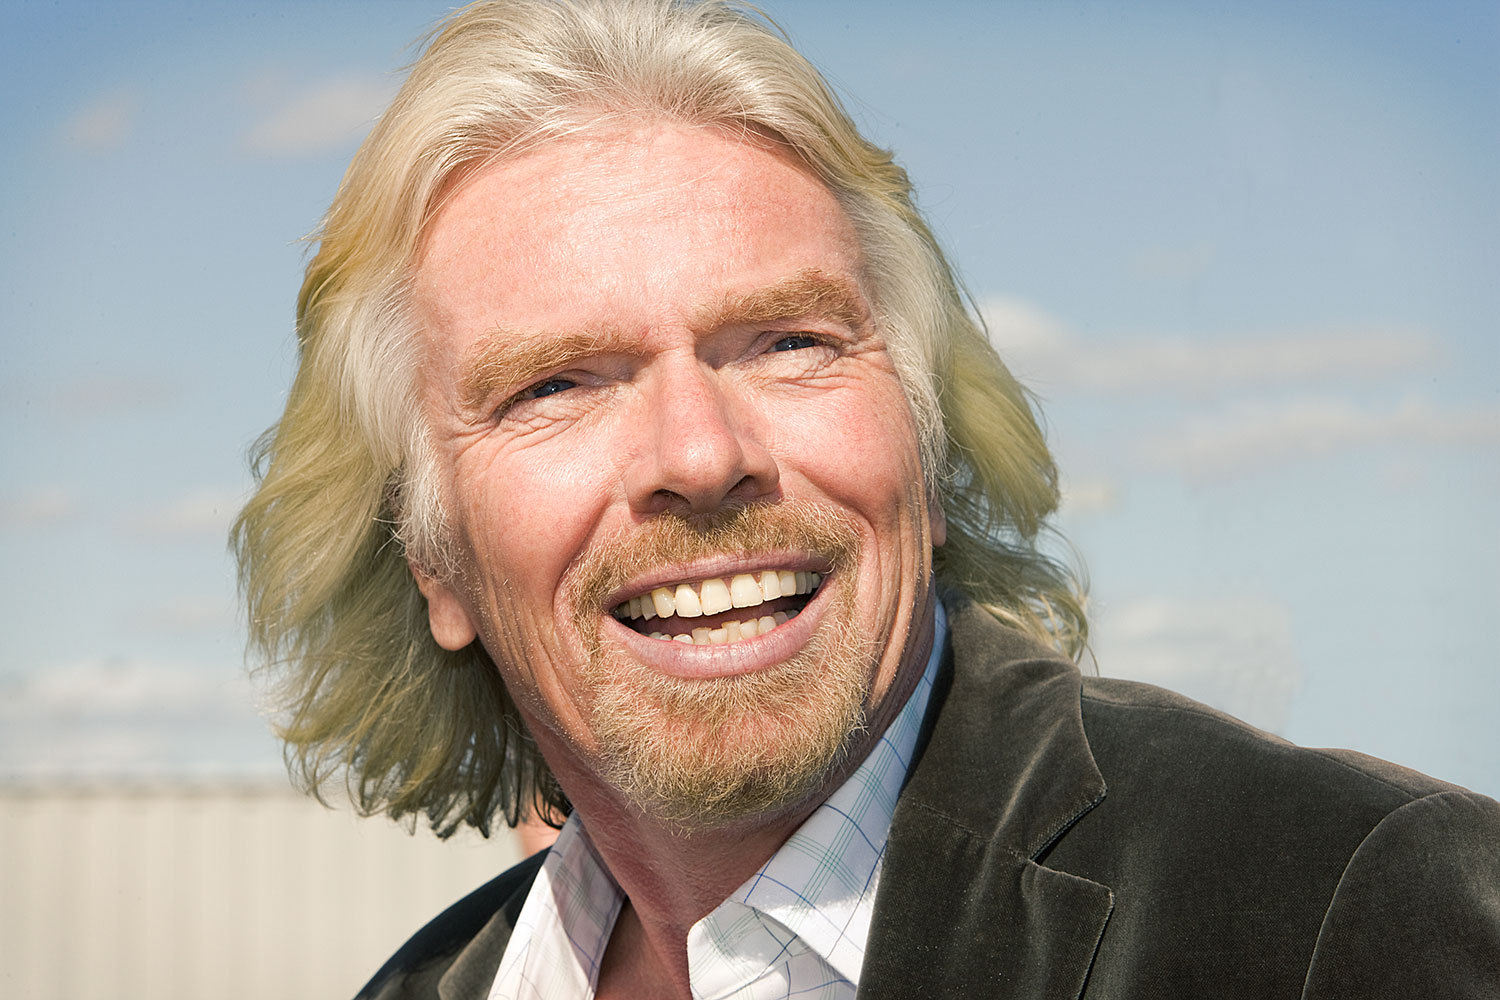 5 - Access; The Ultimate Asset. How To Connect With Big Names Like Tim Ferris and Richard Branson